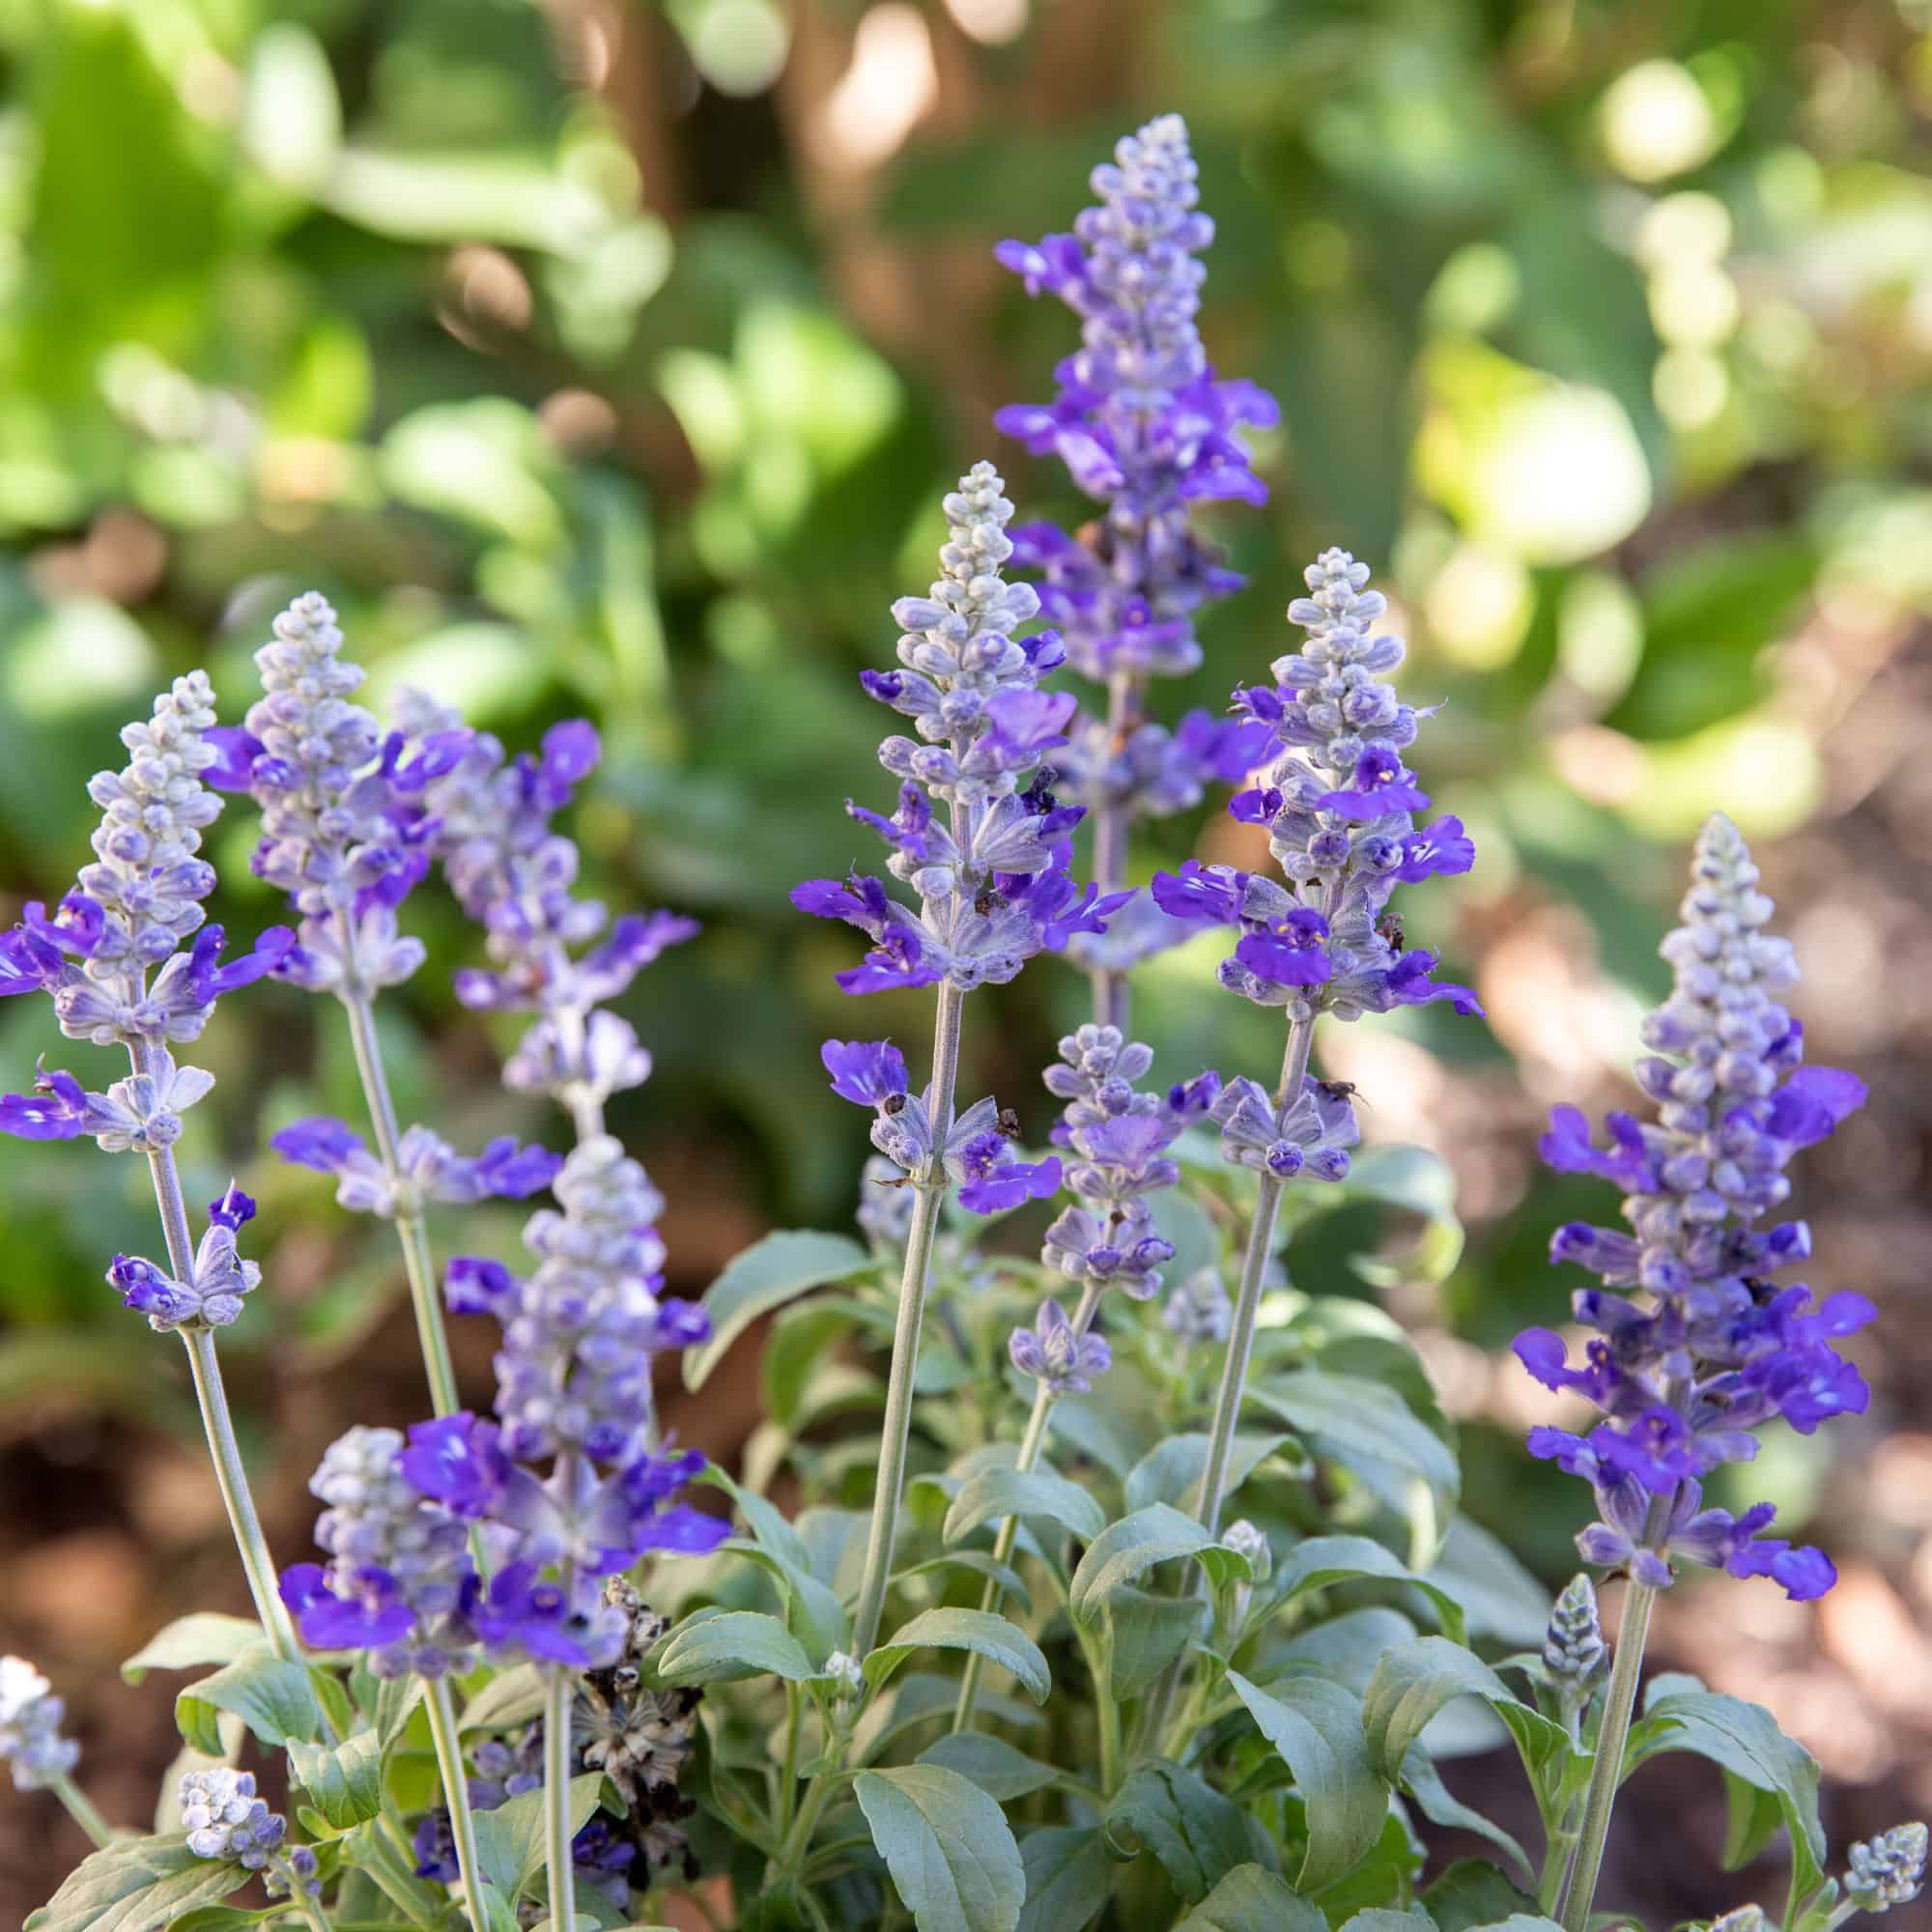 common types of salvia flowers annual and perennial 4767399 1 4ec1b72904974072ae440be72439ba12